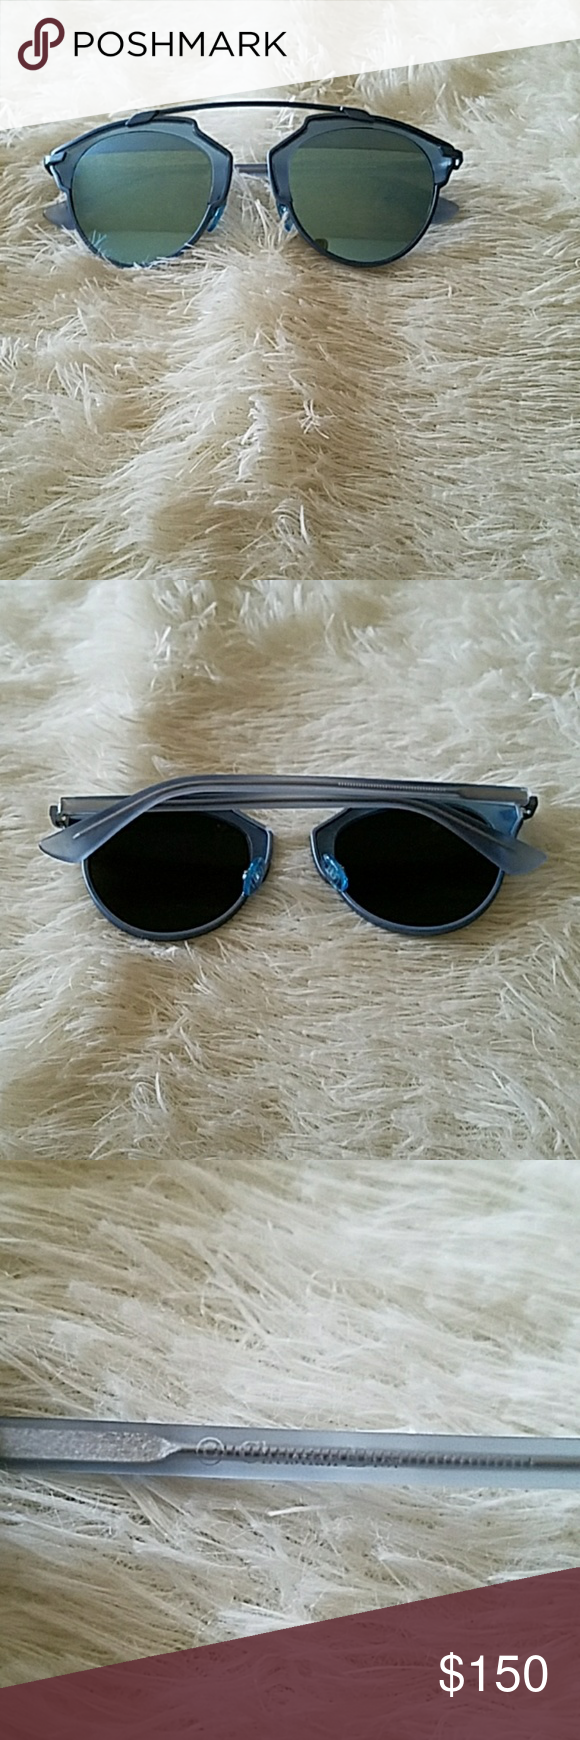 b91d1033a85 Dior So Real RMJLH sunglasses Dior So Real sunglasses with serial number  RMJLH. Glasses only. Made in Italy. 100% authentic. Dior Accessories  Sunglasses